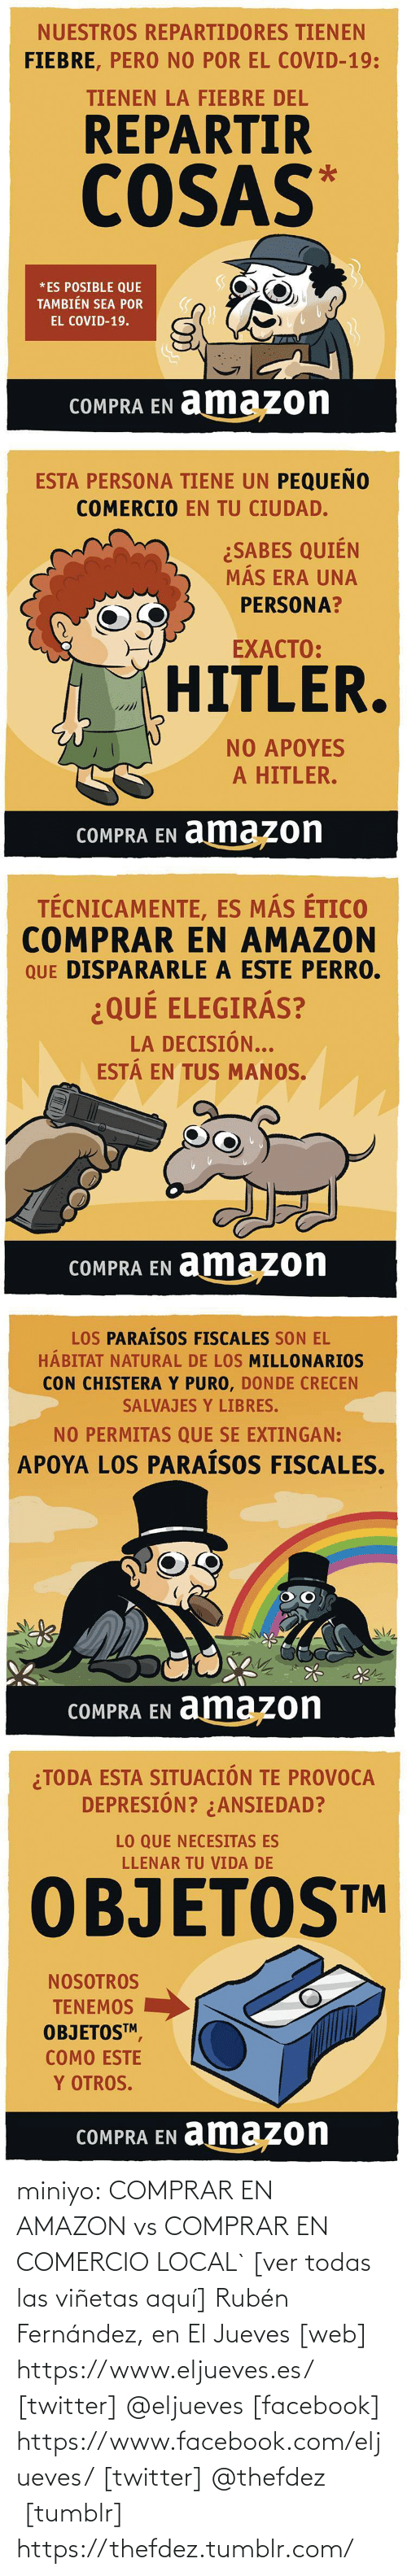 facebook.com: miniyo:  COMPRAR EN AMAZON vs COMPRAR EN COMERCIO LOCAL` [ver todas las viñetas aquí] Rubén Fernández, en El Jueves [web] https://www.eljueves.es/ [twitter] @eljueves [facebook] https://www.facebook.com/eljueves/ [twitter] @thefdez   [tumblr] https://thefdez.tumblr.com/